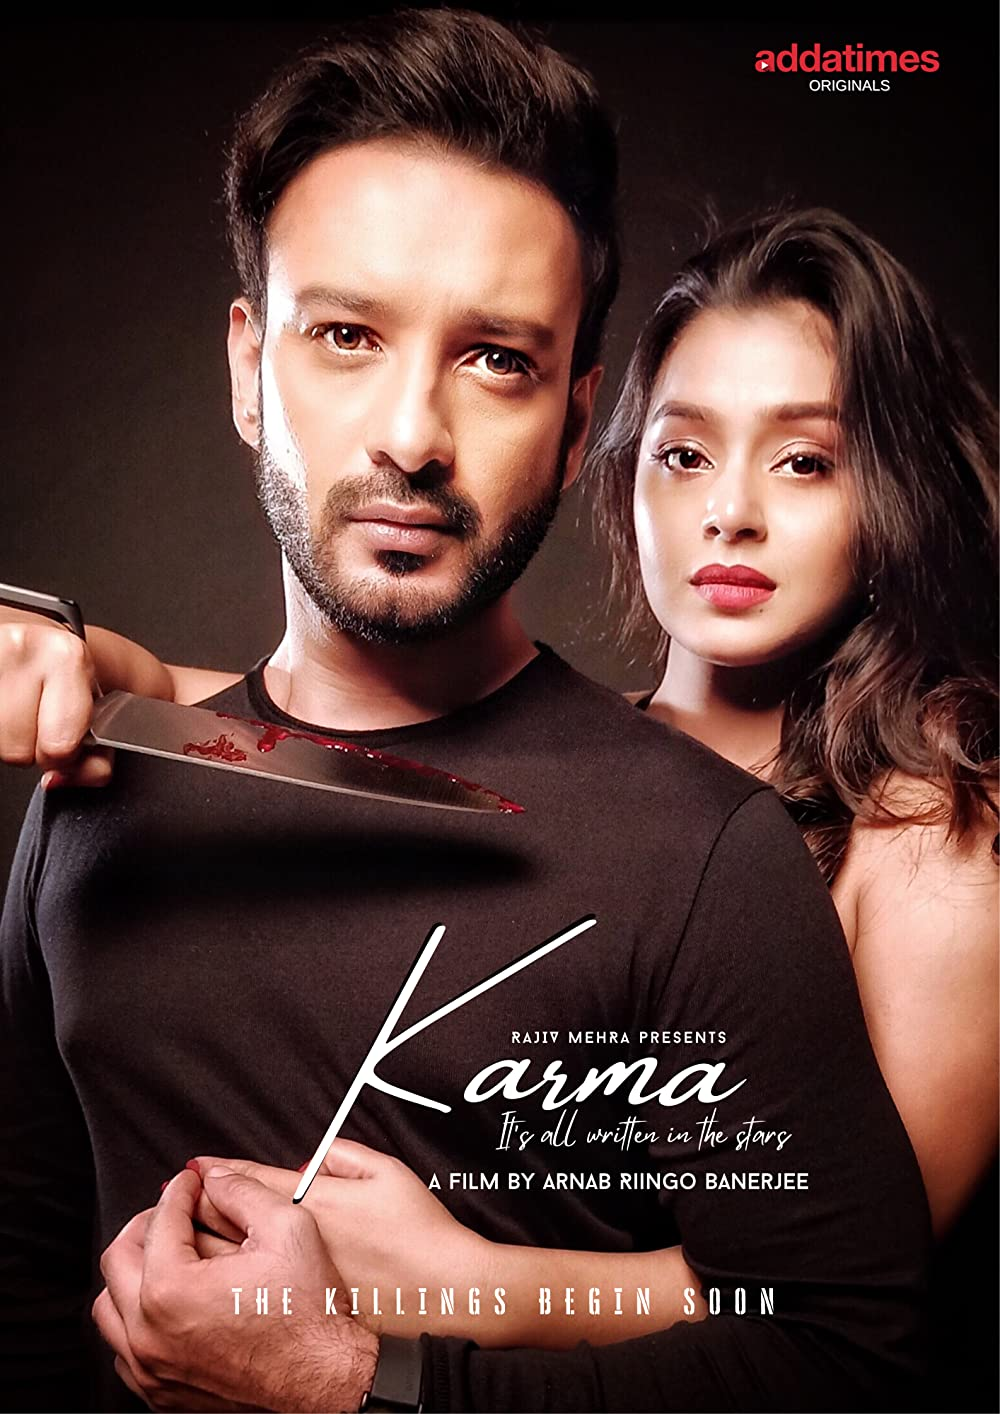 Karma 2020 Bengali-Hindi Dual Audio 480p HDRip 400MB